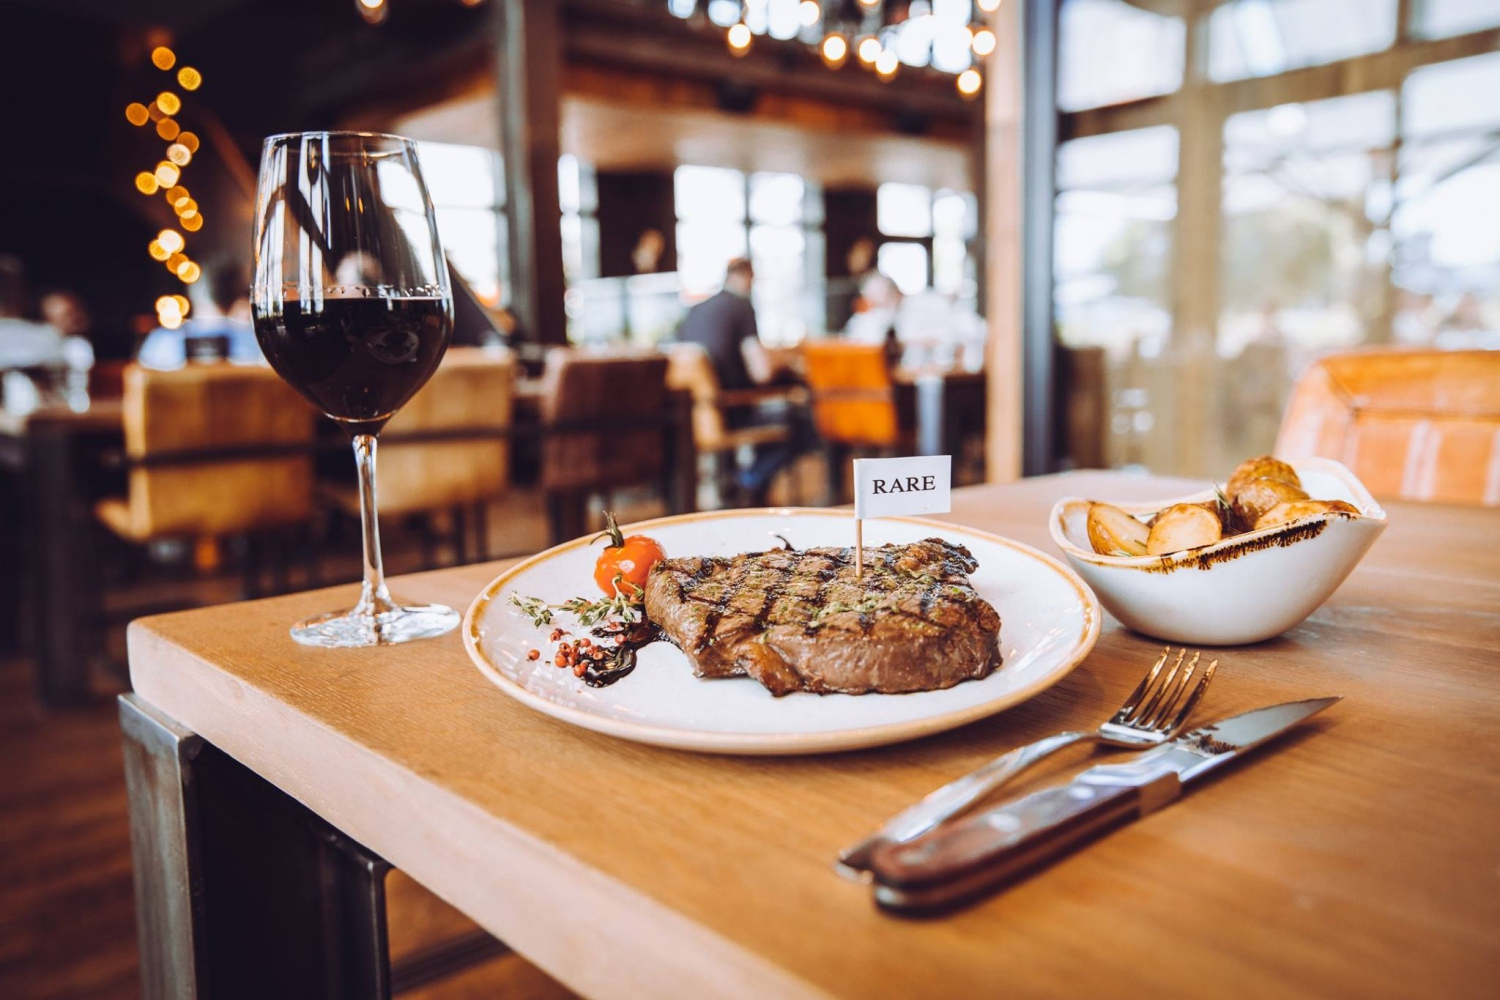 10 Tipps Zum Steak Essen In Düsseldorf Steakhouse The Ash Topliste Mr Düsseldorf Mr Düsseldorf